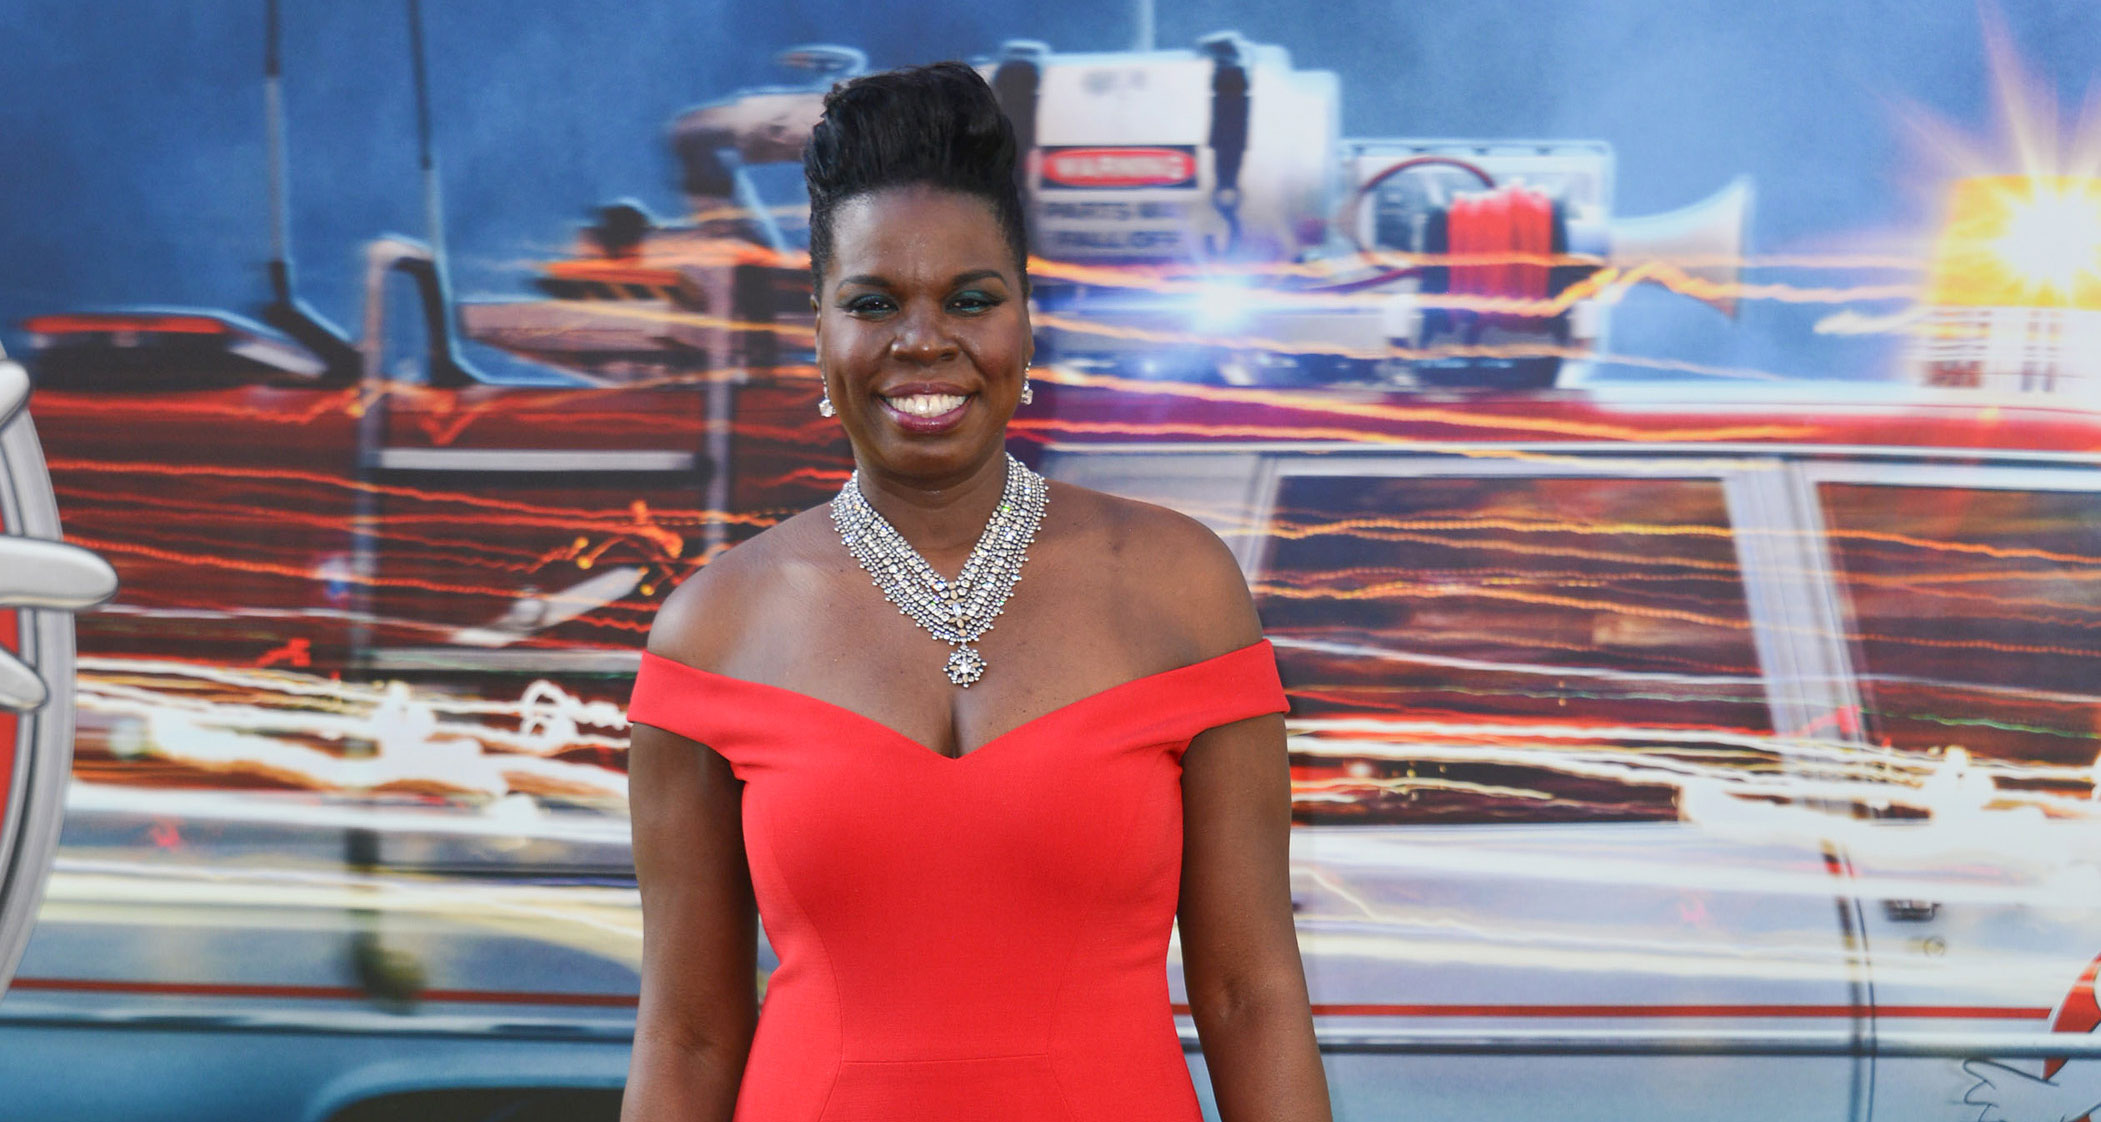 Feds investigating hack of Leslie Jones's website